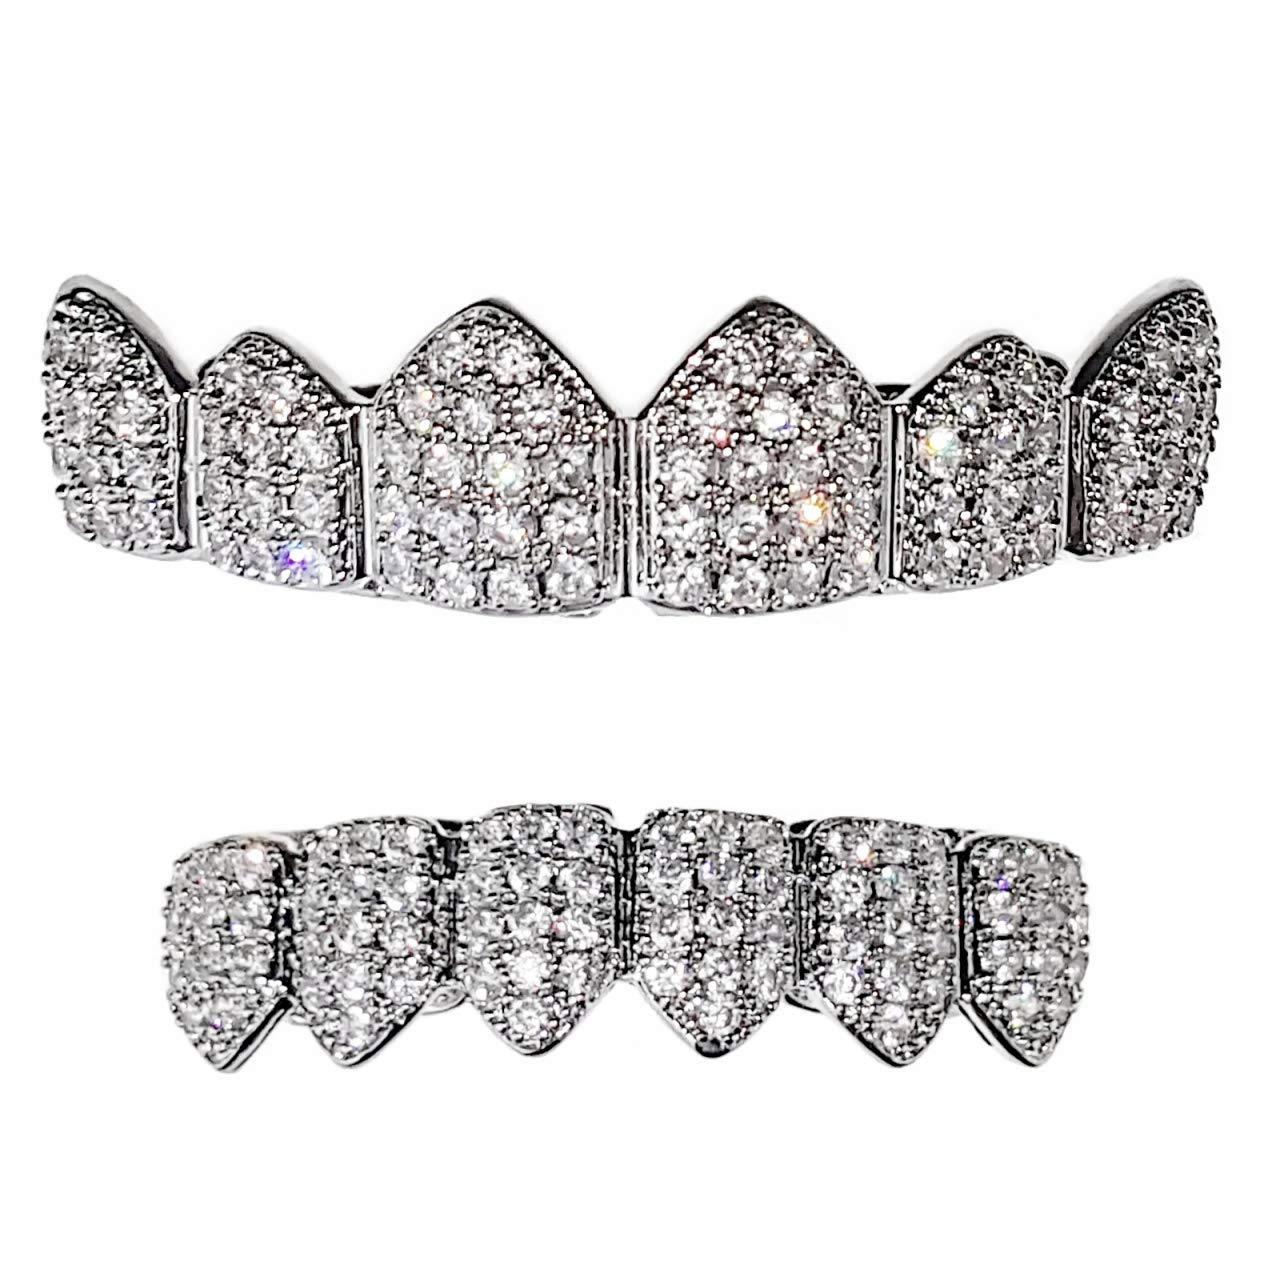 CZ Grillz Set Silver Tone Cubic Zirconia Micro Pave Bling Teeth Top & Bottom Row Iced Hip Hop Grills by Best Grillz